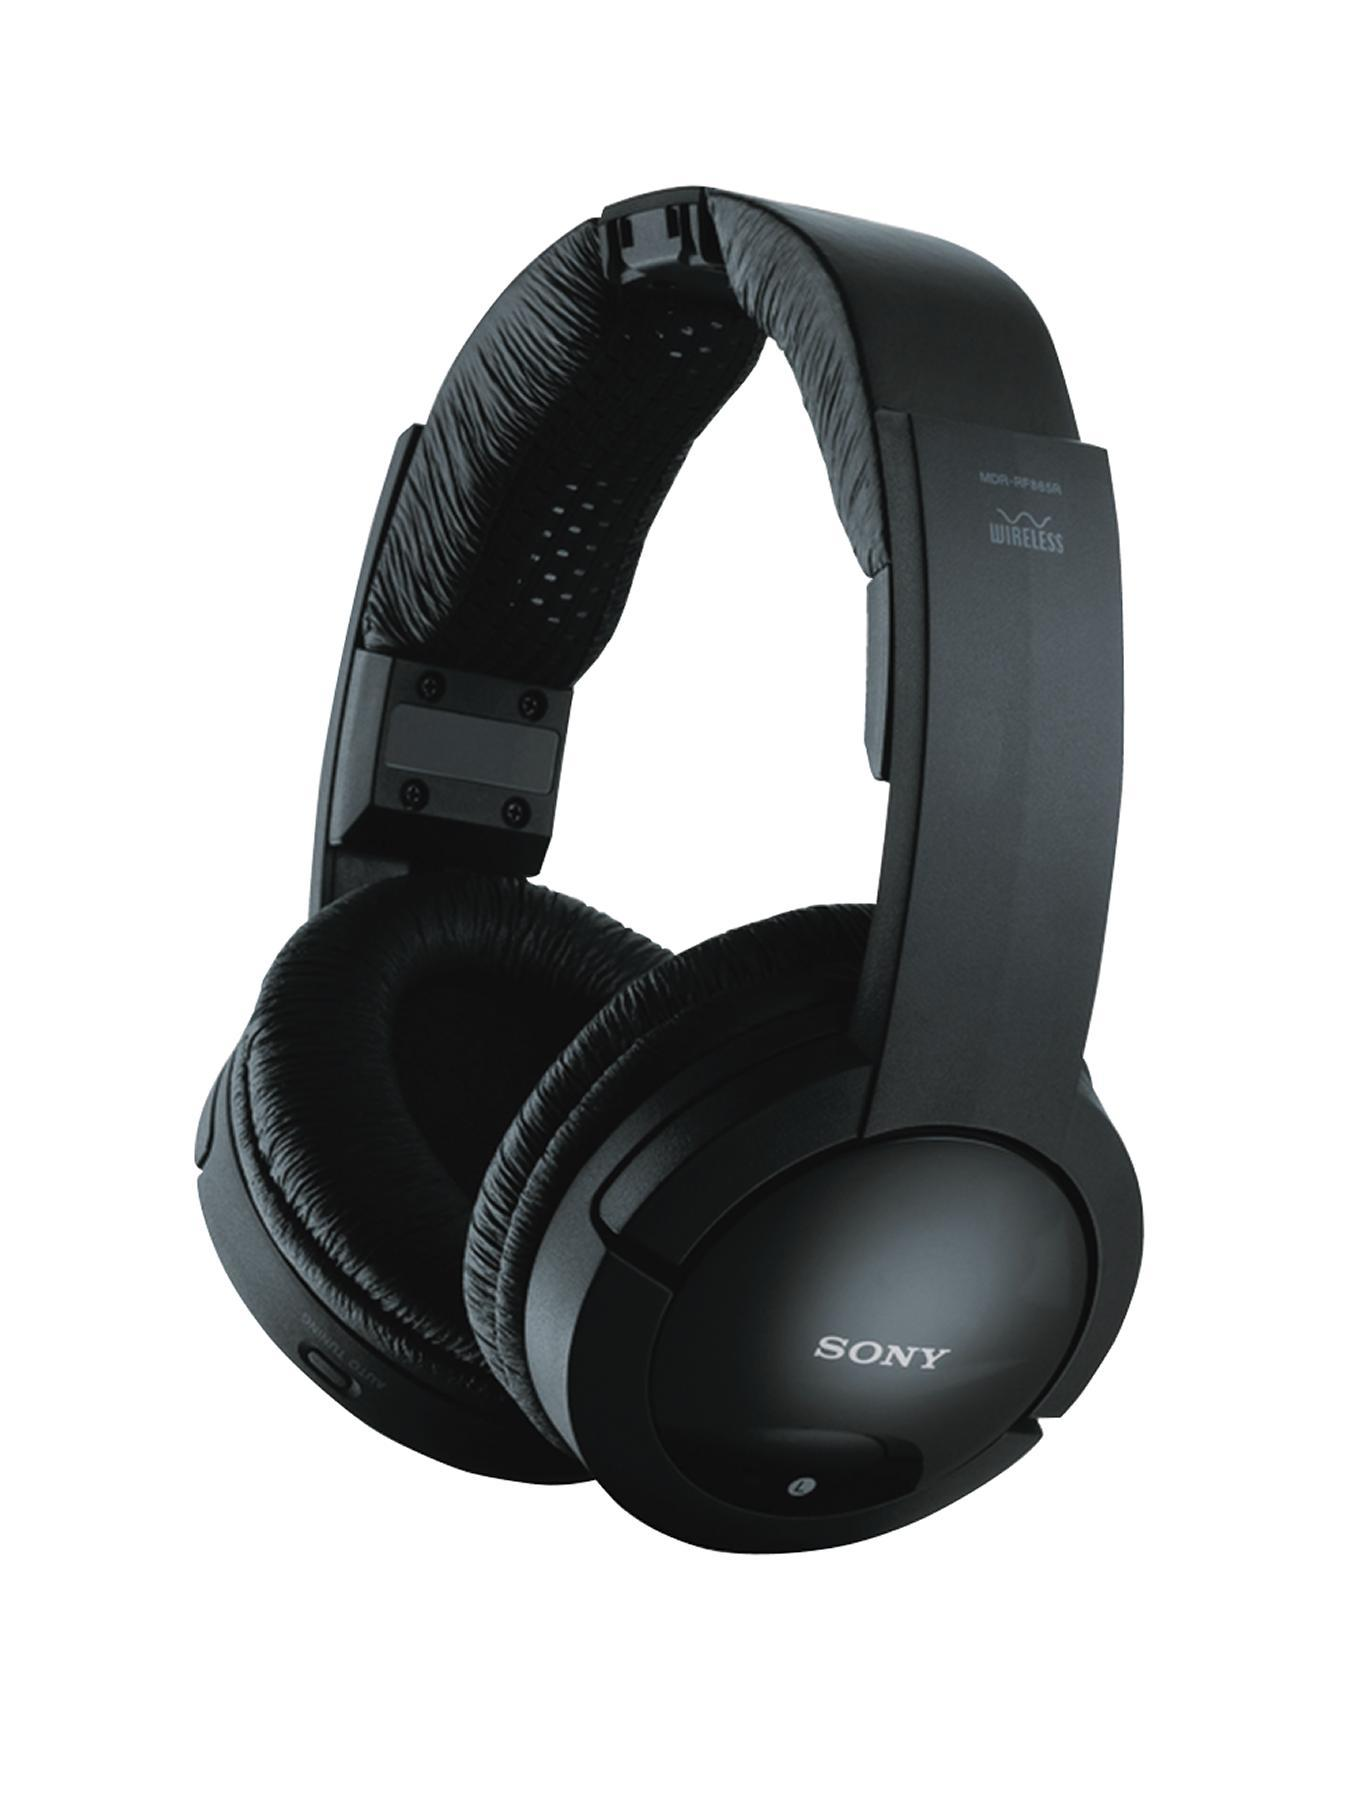 Sony RF865 Wireless Headphones